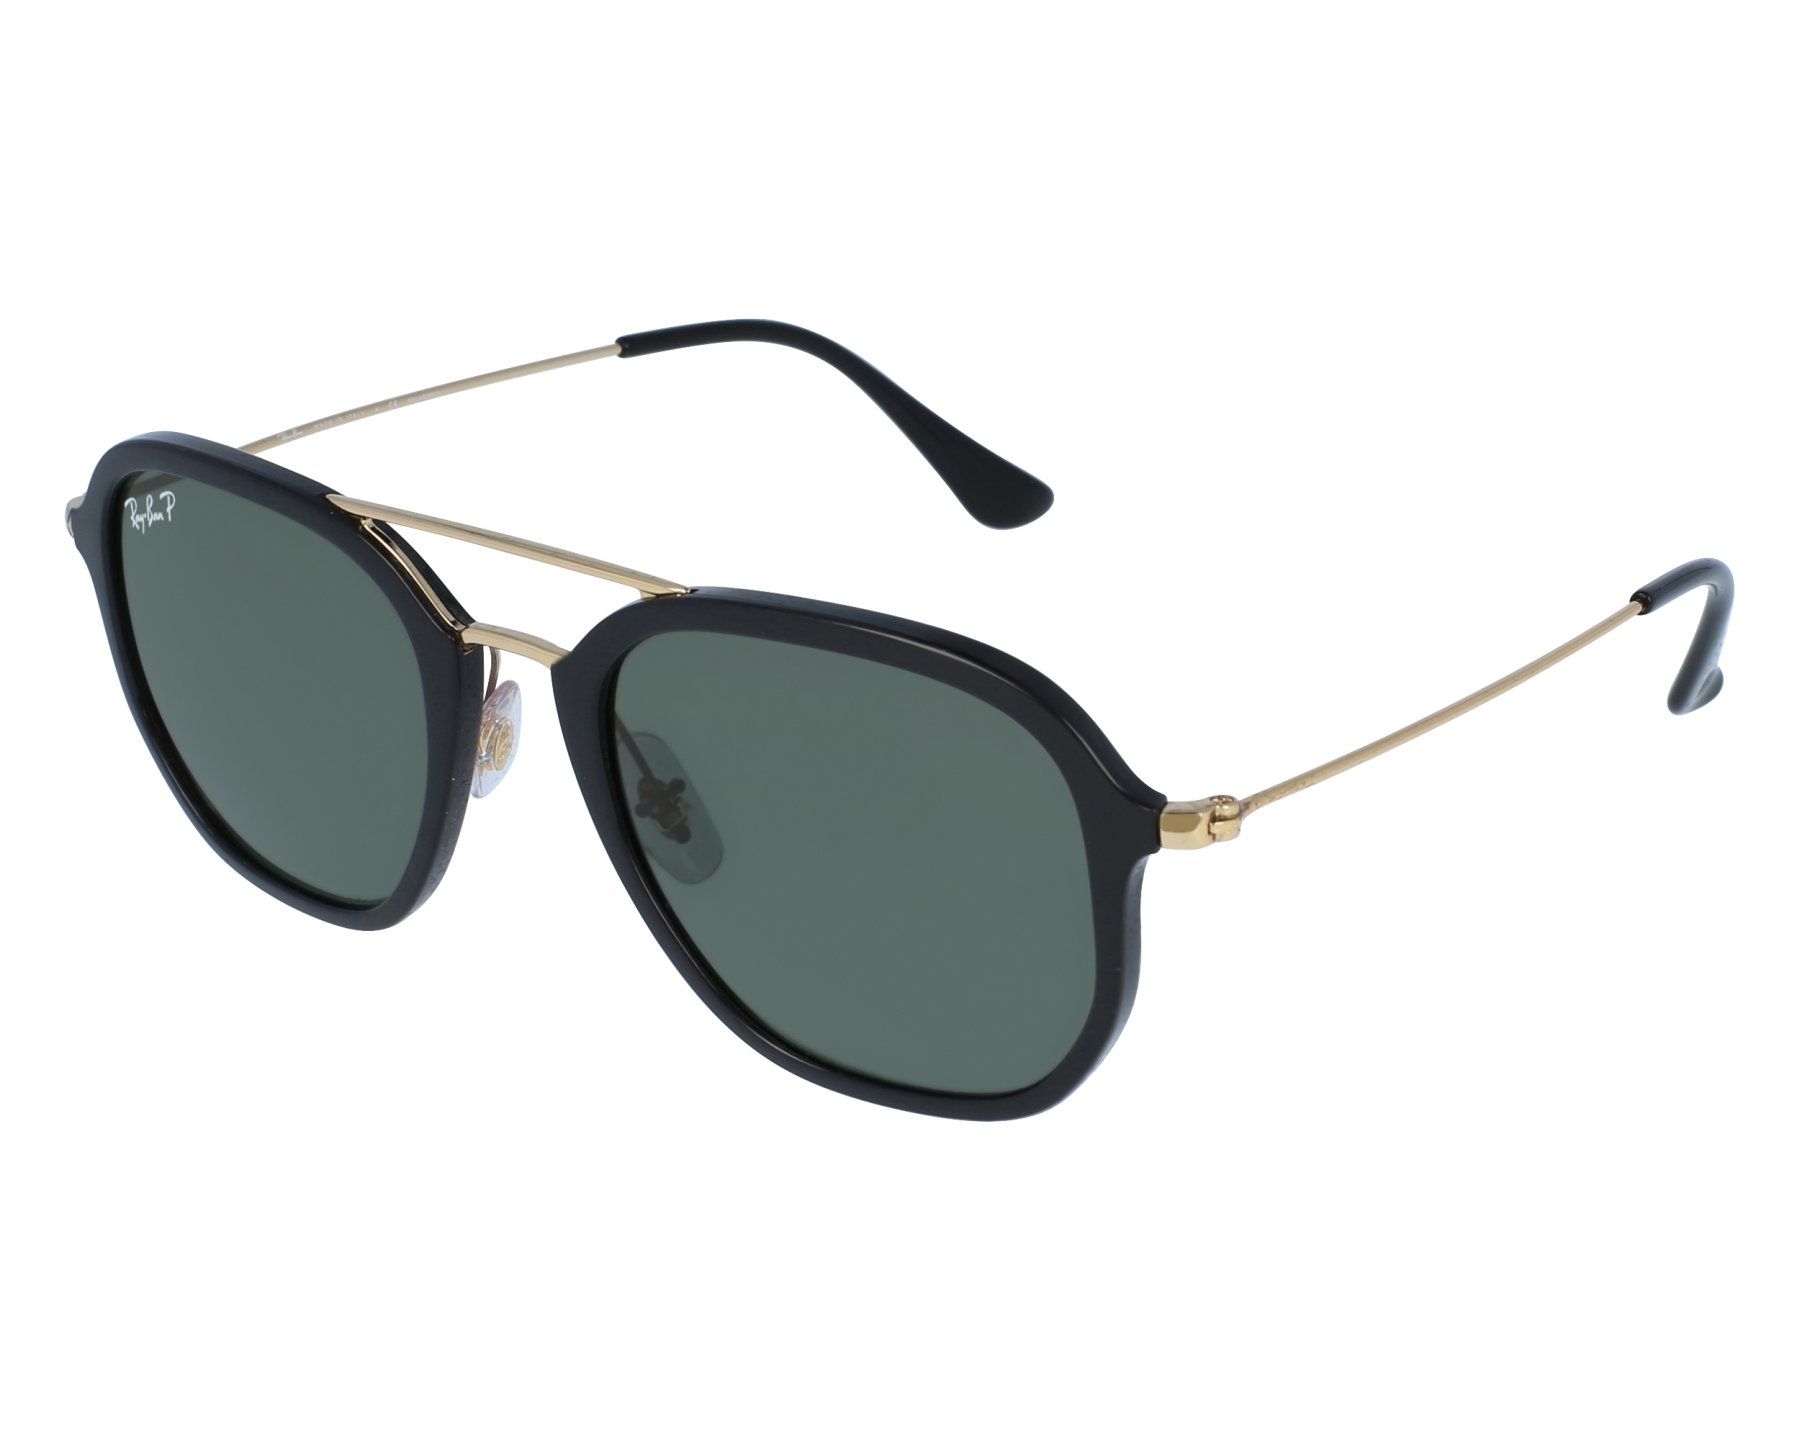 30be235d39a Sunglasses Ray-Ban RB-4273 601 9A 52-21 Black Gold front